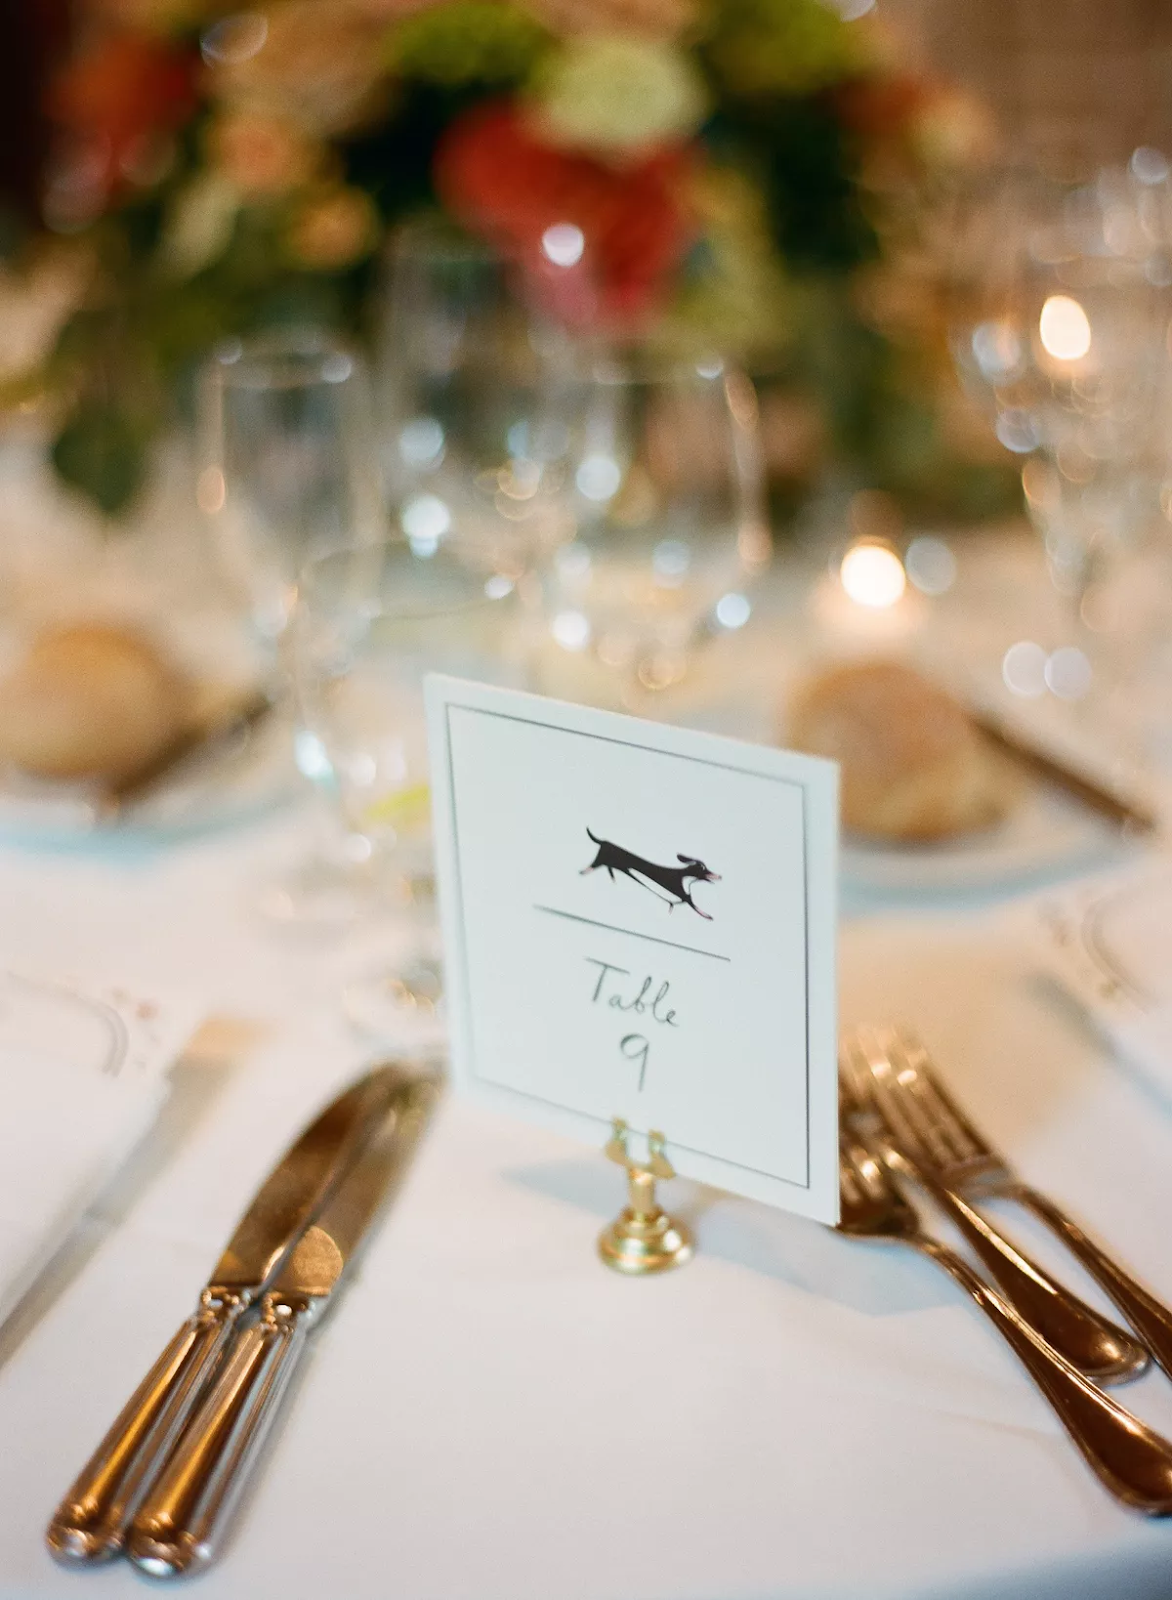 Wedding signage for tables feature dog illustration